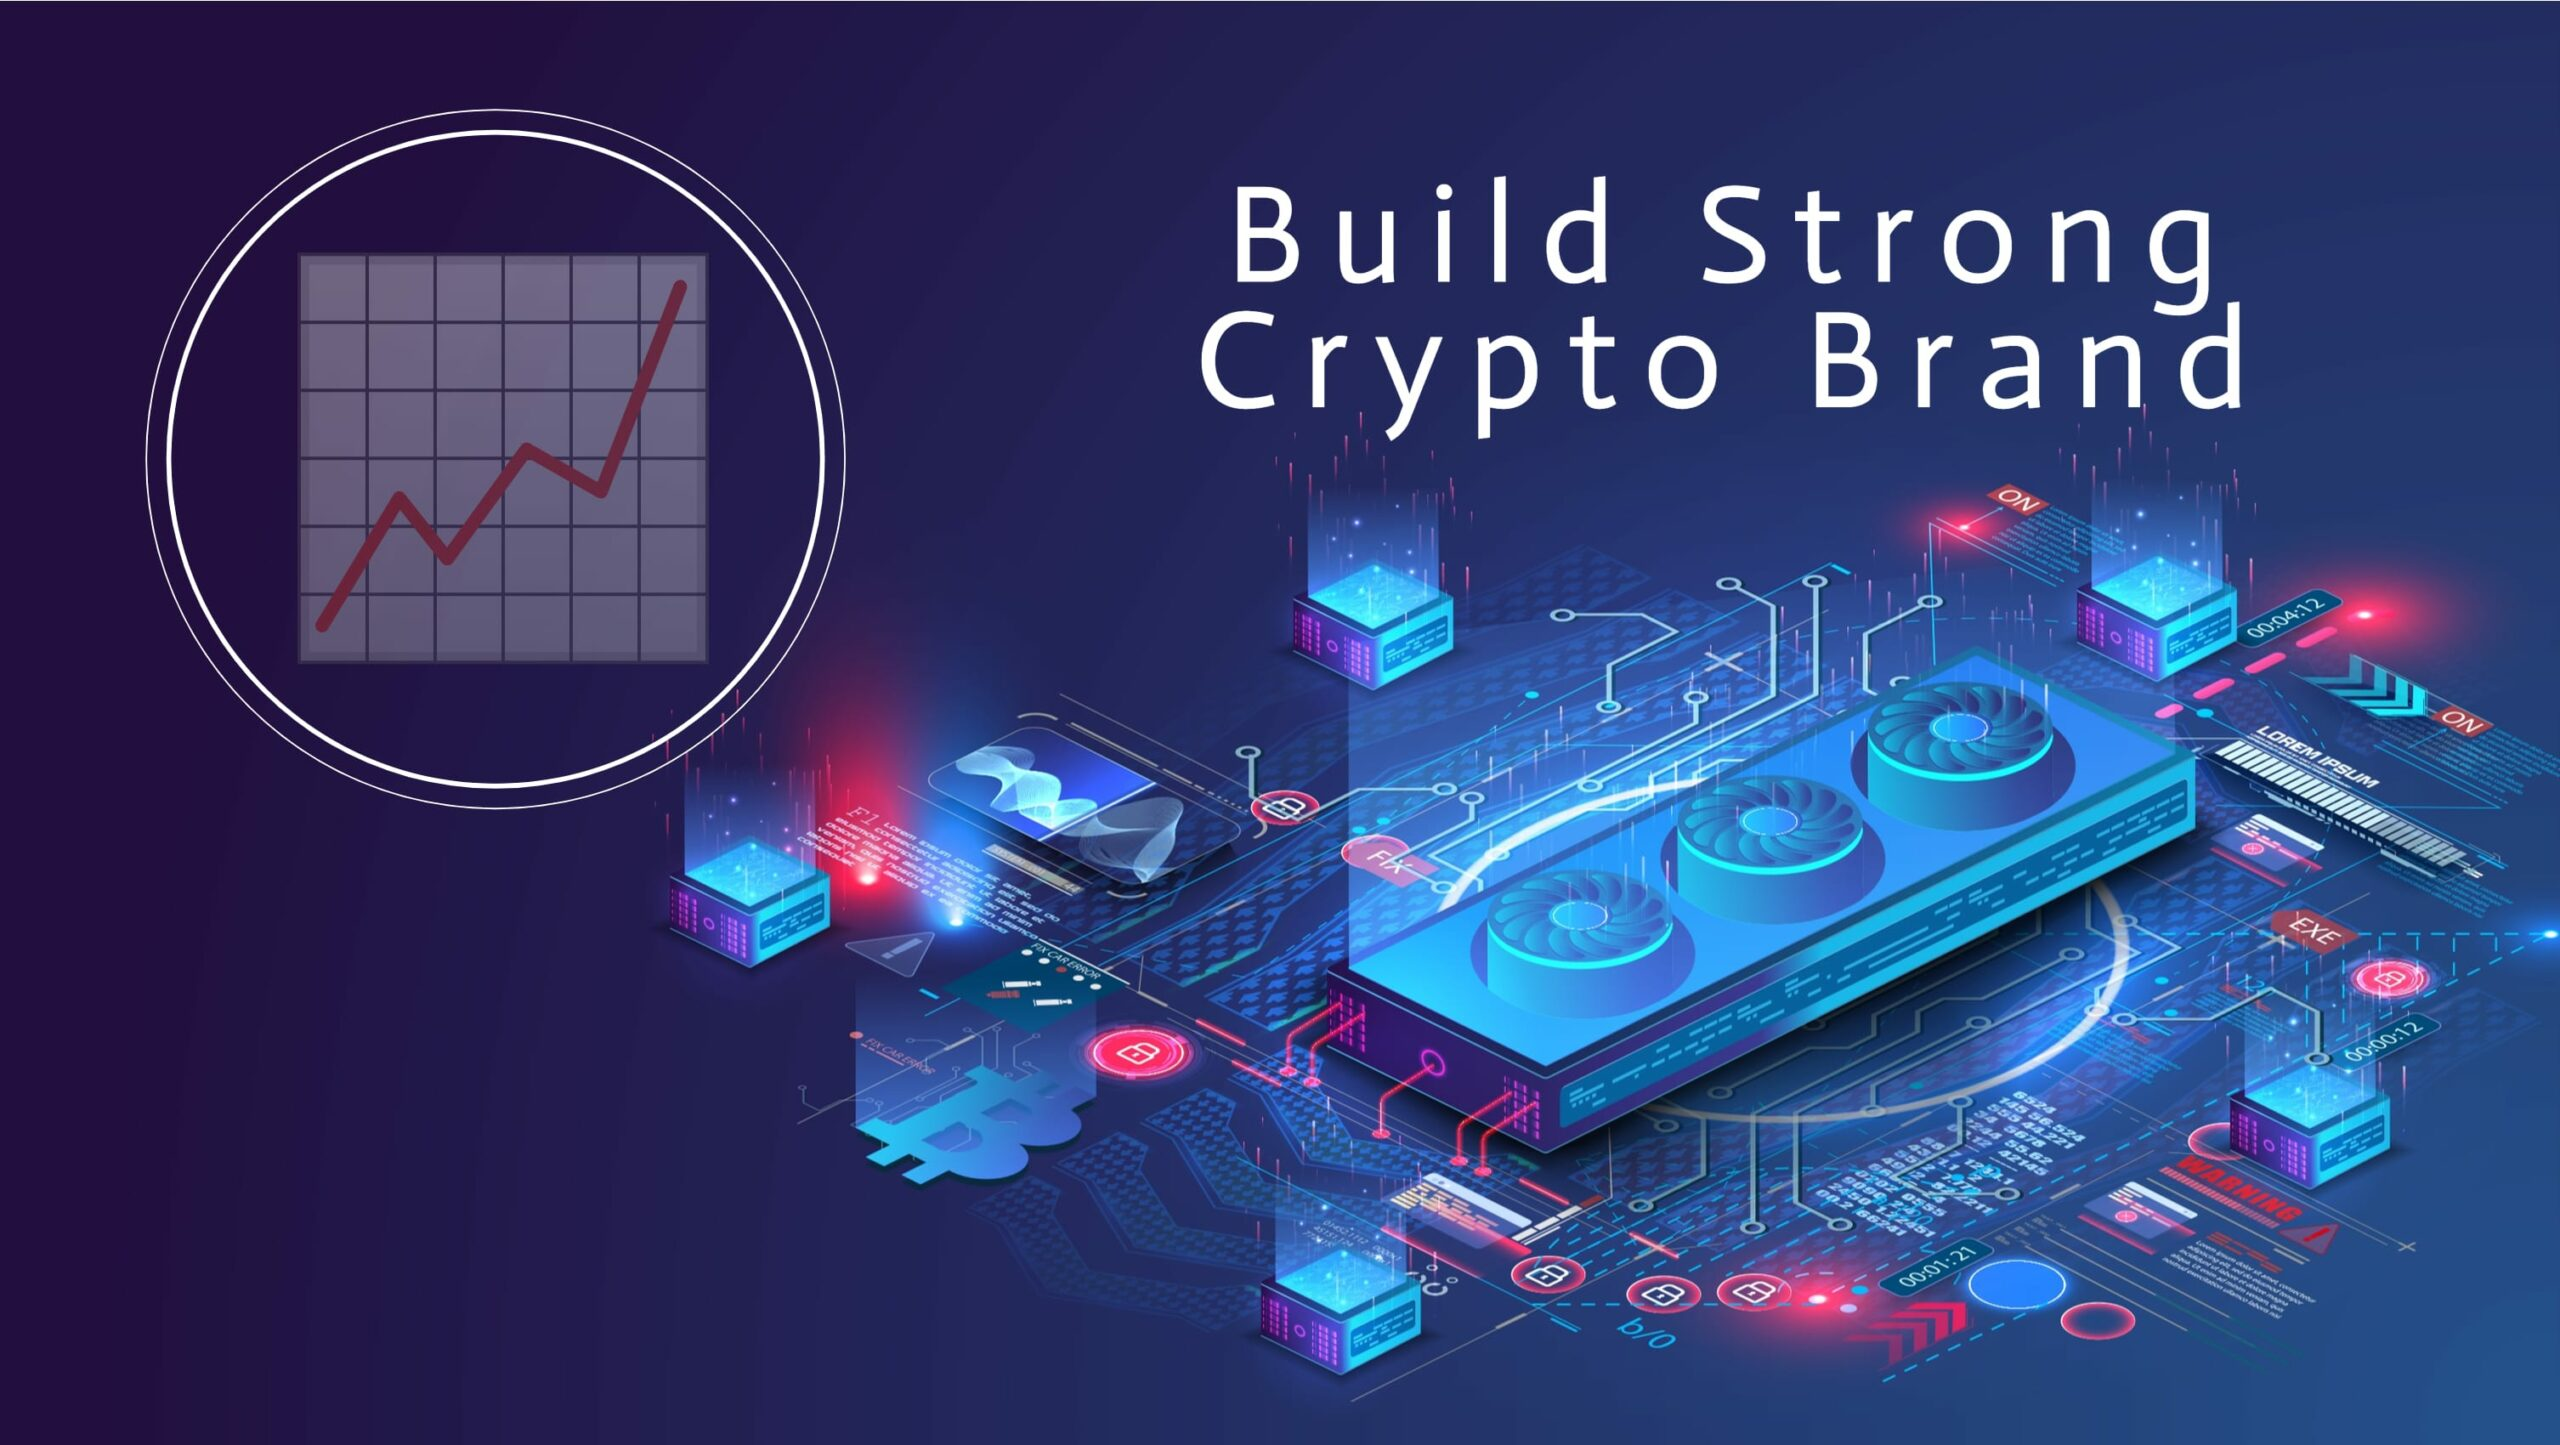 The Crypto Market Has Calmed Down, Now Is The Time To Build A Strong Brand